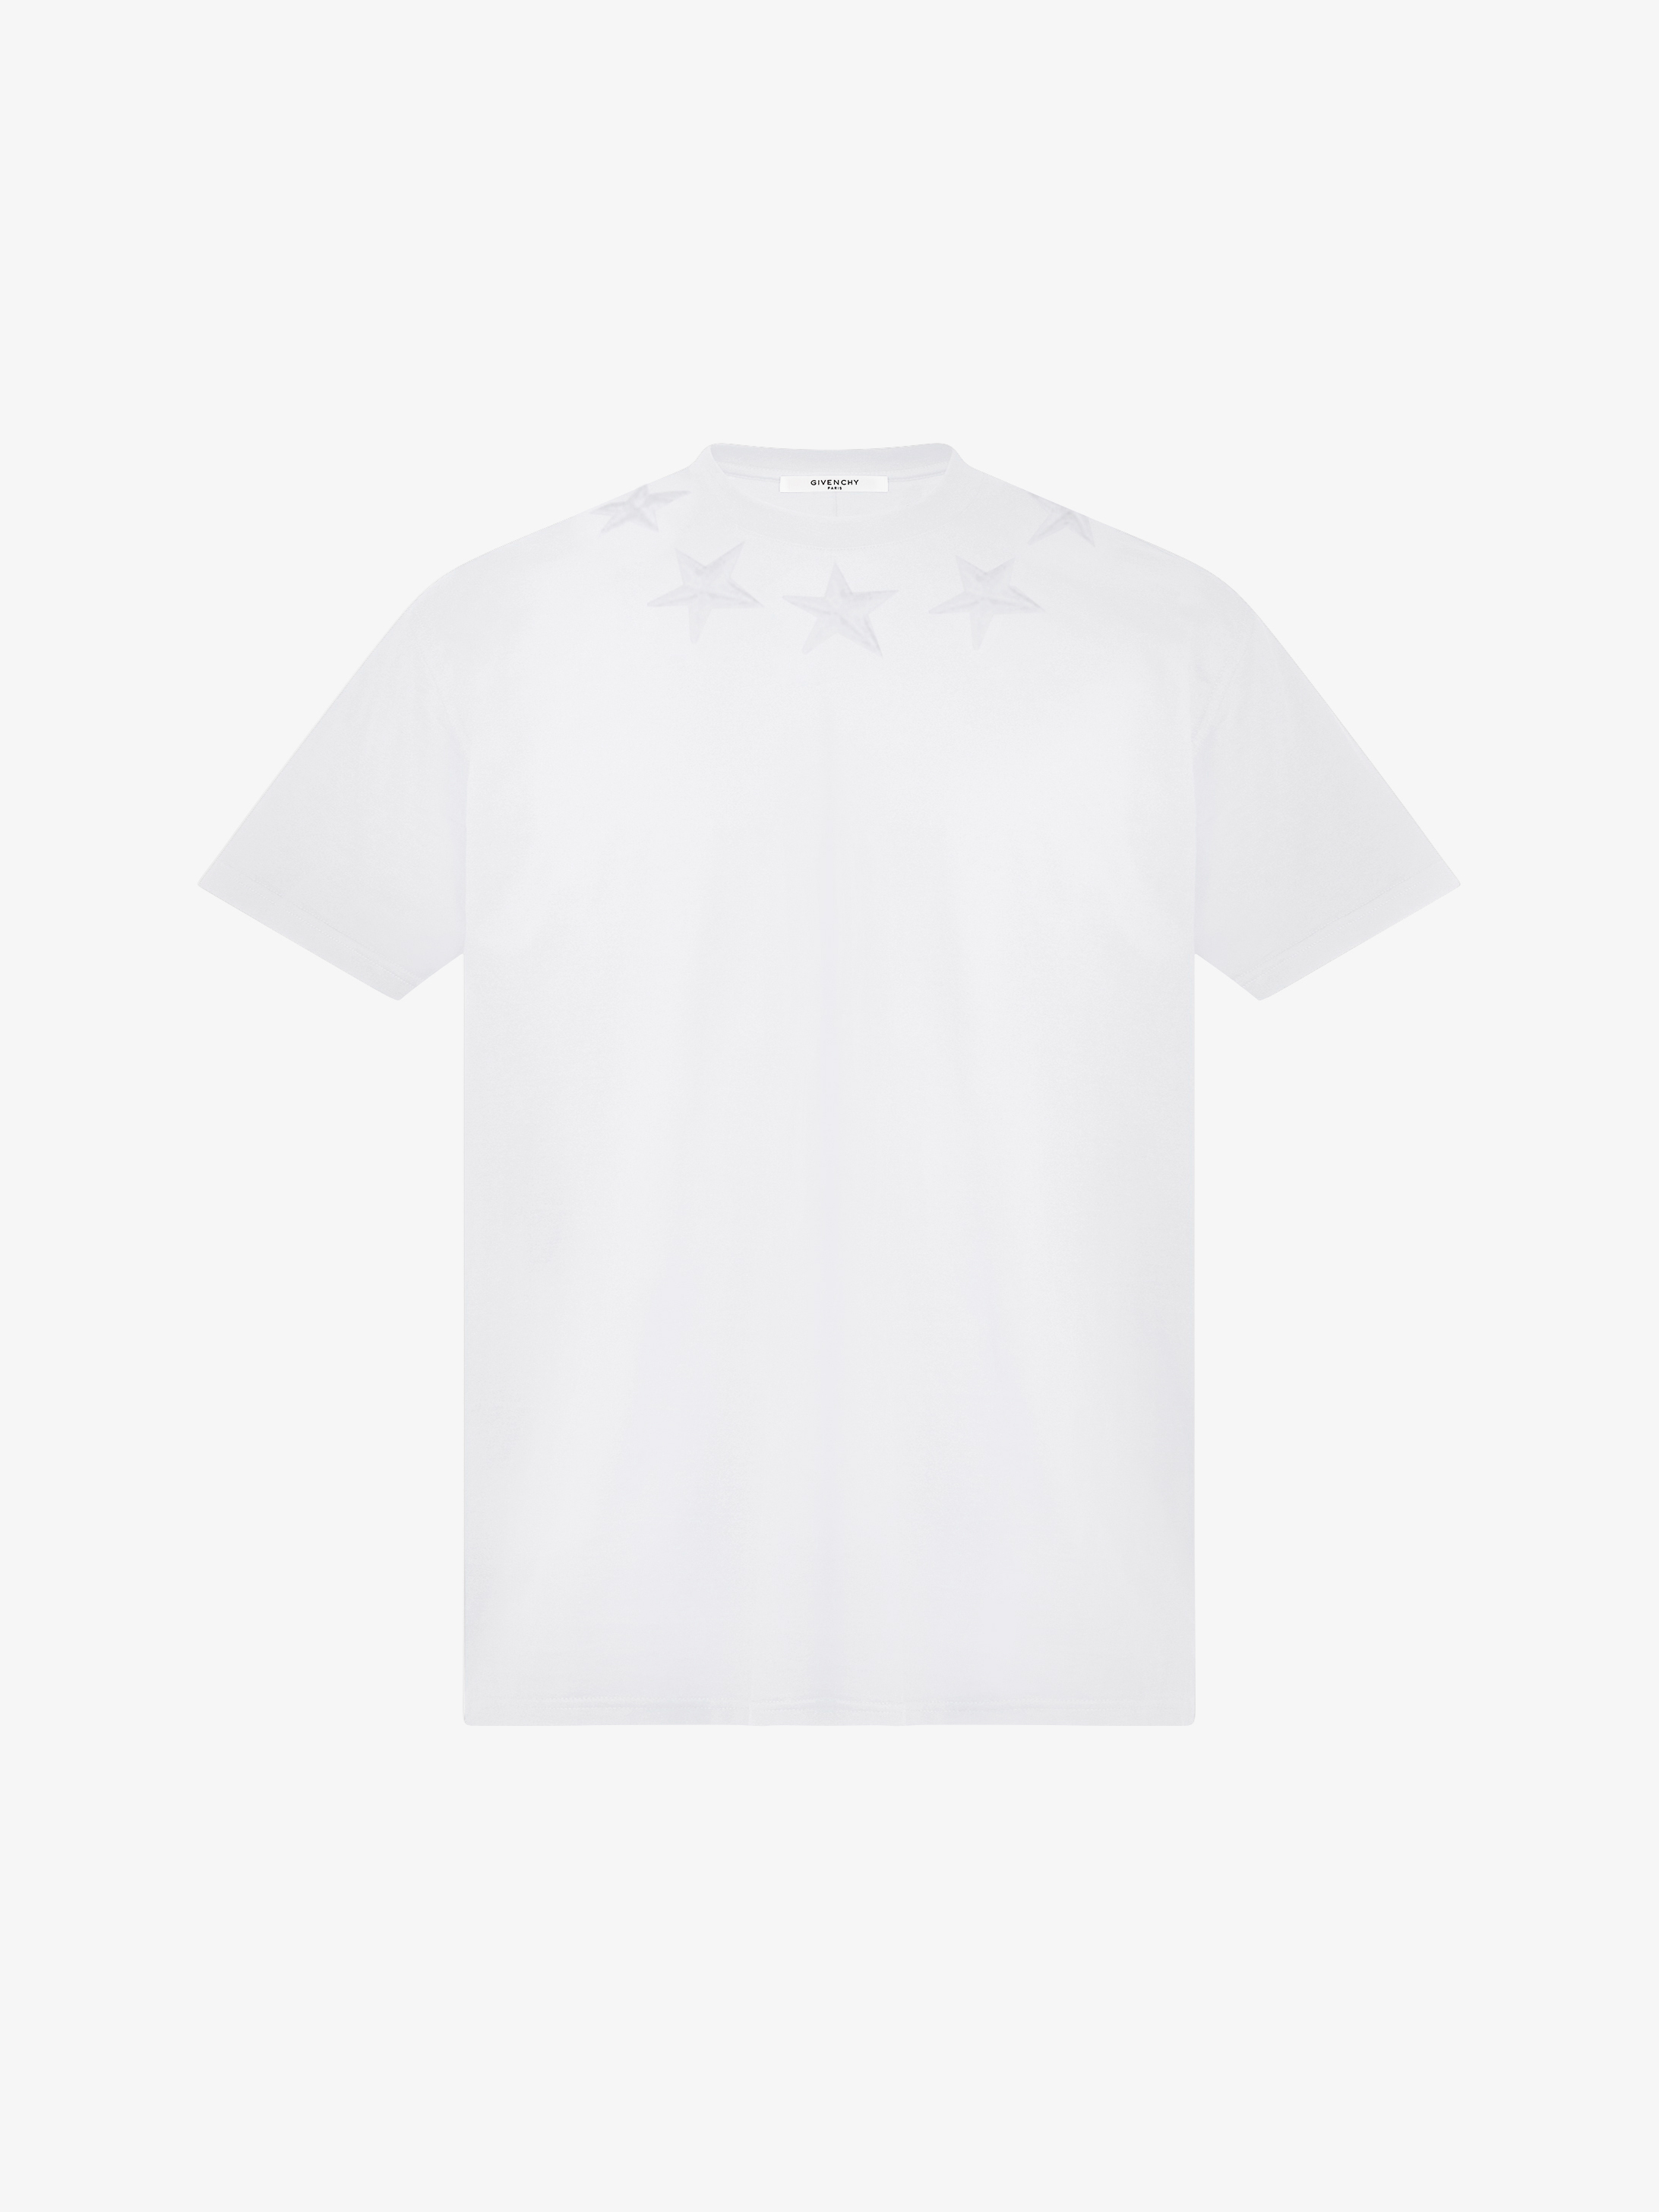 Stars embroidered oversized t-shirt